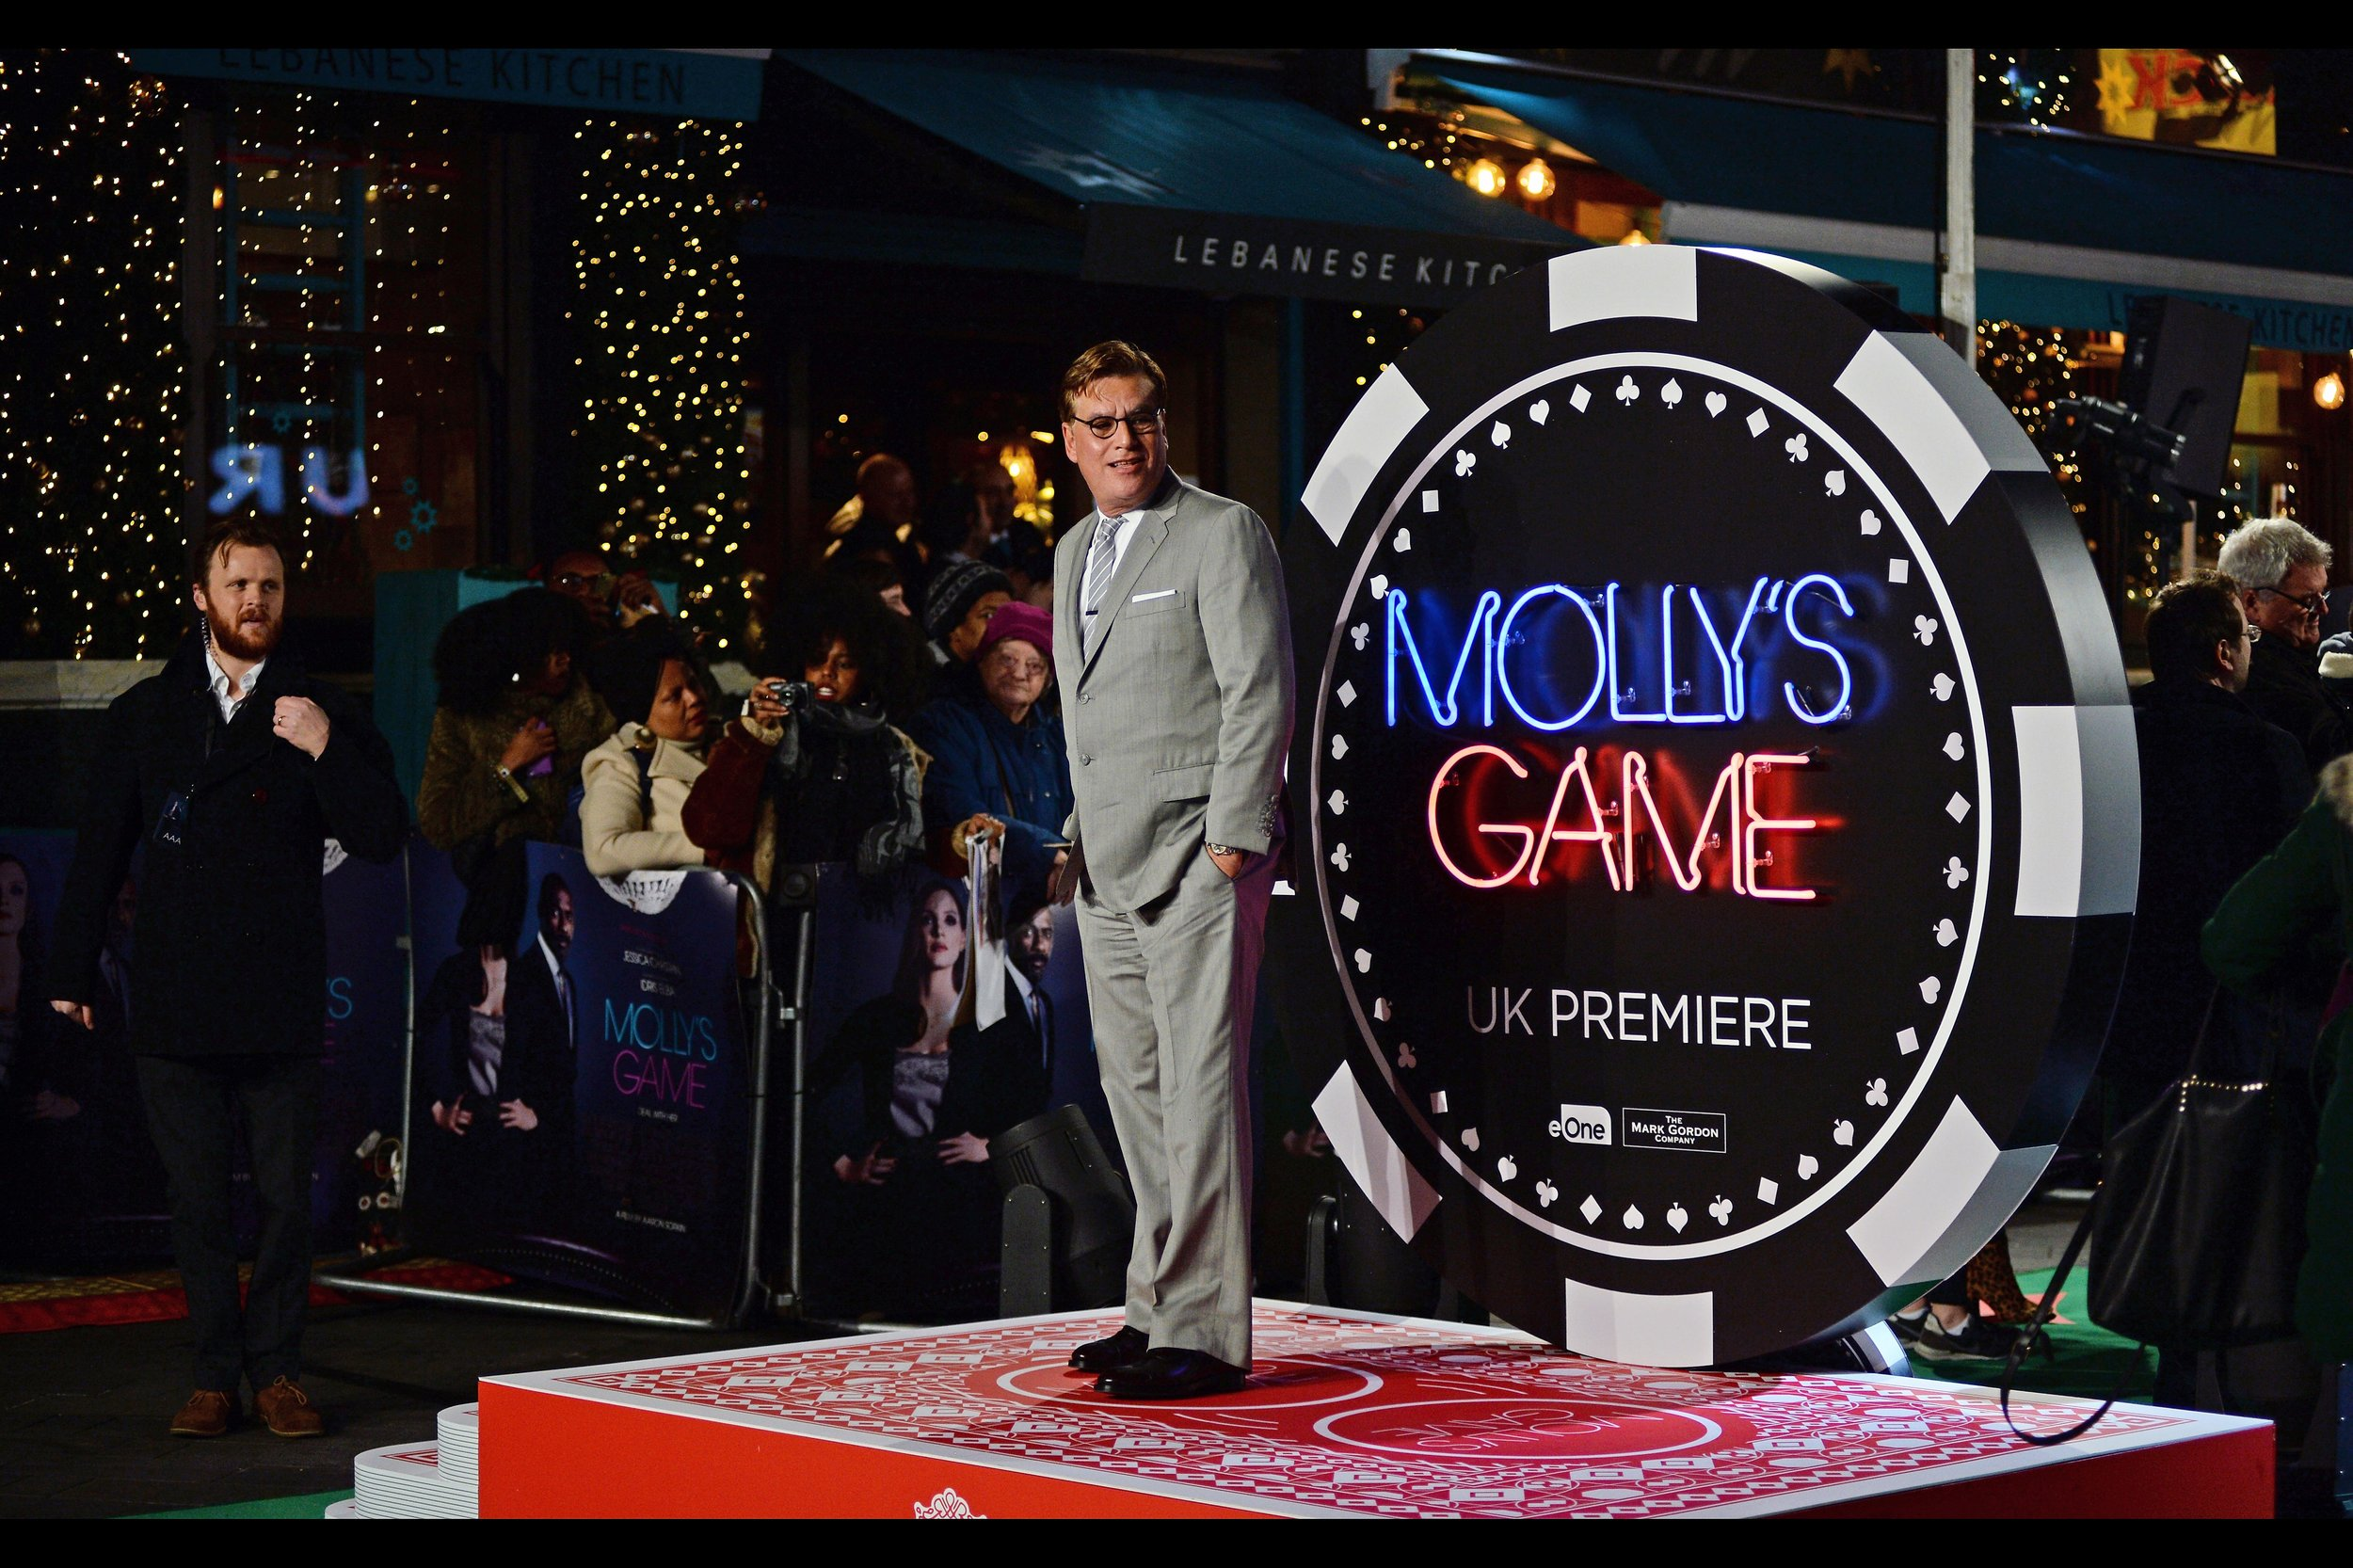 """Aaron Sorkin is the director and screenwriter of """"Molly's Game"""" - he won an Oscar for best adapted screenplay for the brilliant 'The Social Network', got a nomination for the outstanding 'Moneyball' and how the movie   'Steve Jobs'   didn't get more love for its screenplay and overall excellence I'll never know."""